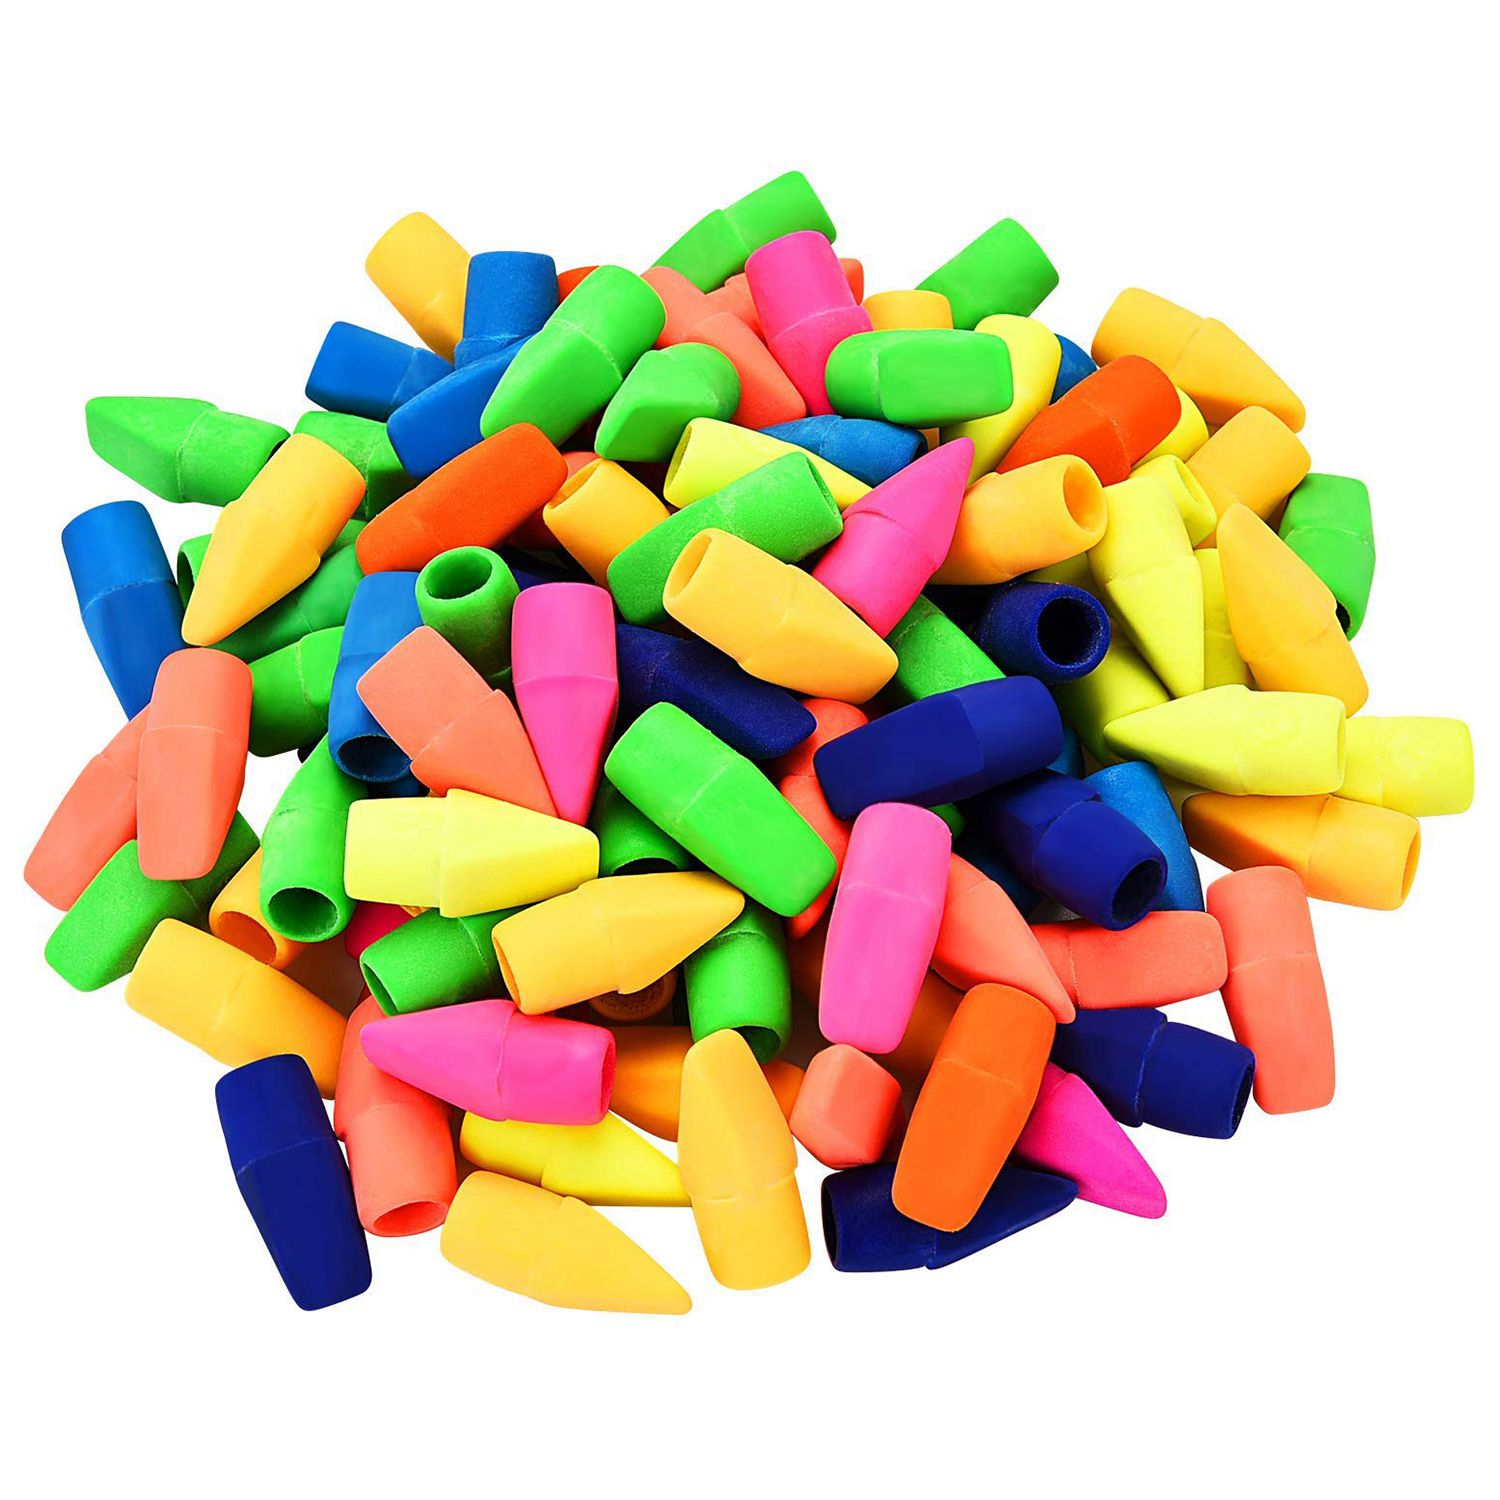 200 Pieces Pencil Eraser Caps Pencils Top Erasers for Kids Students Learning200 Pieces Pencil Eraser Caps Pencils Top Erasers for Kids Students Learning